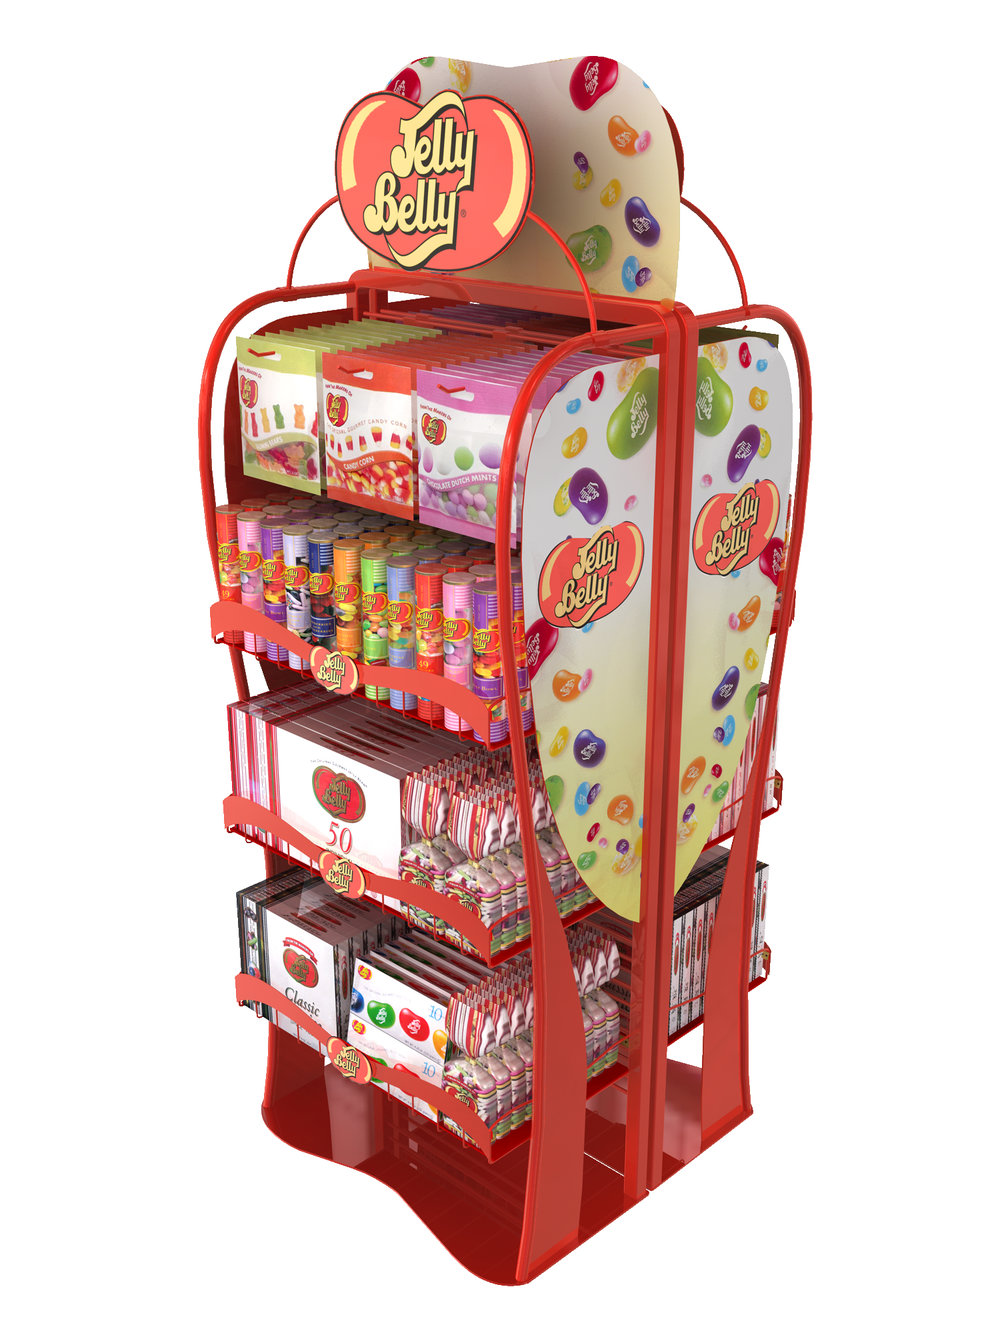 Jelly Belly Red3.jpg